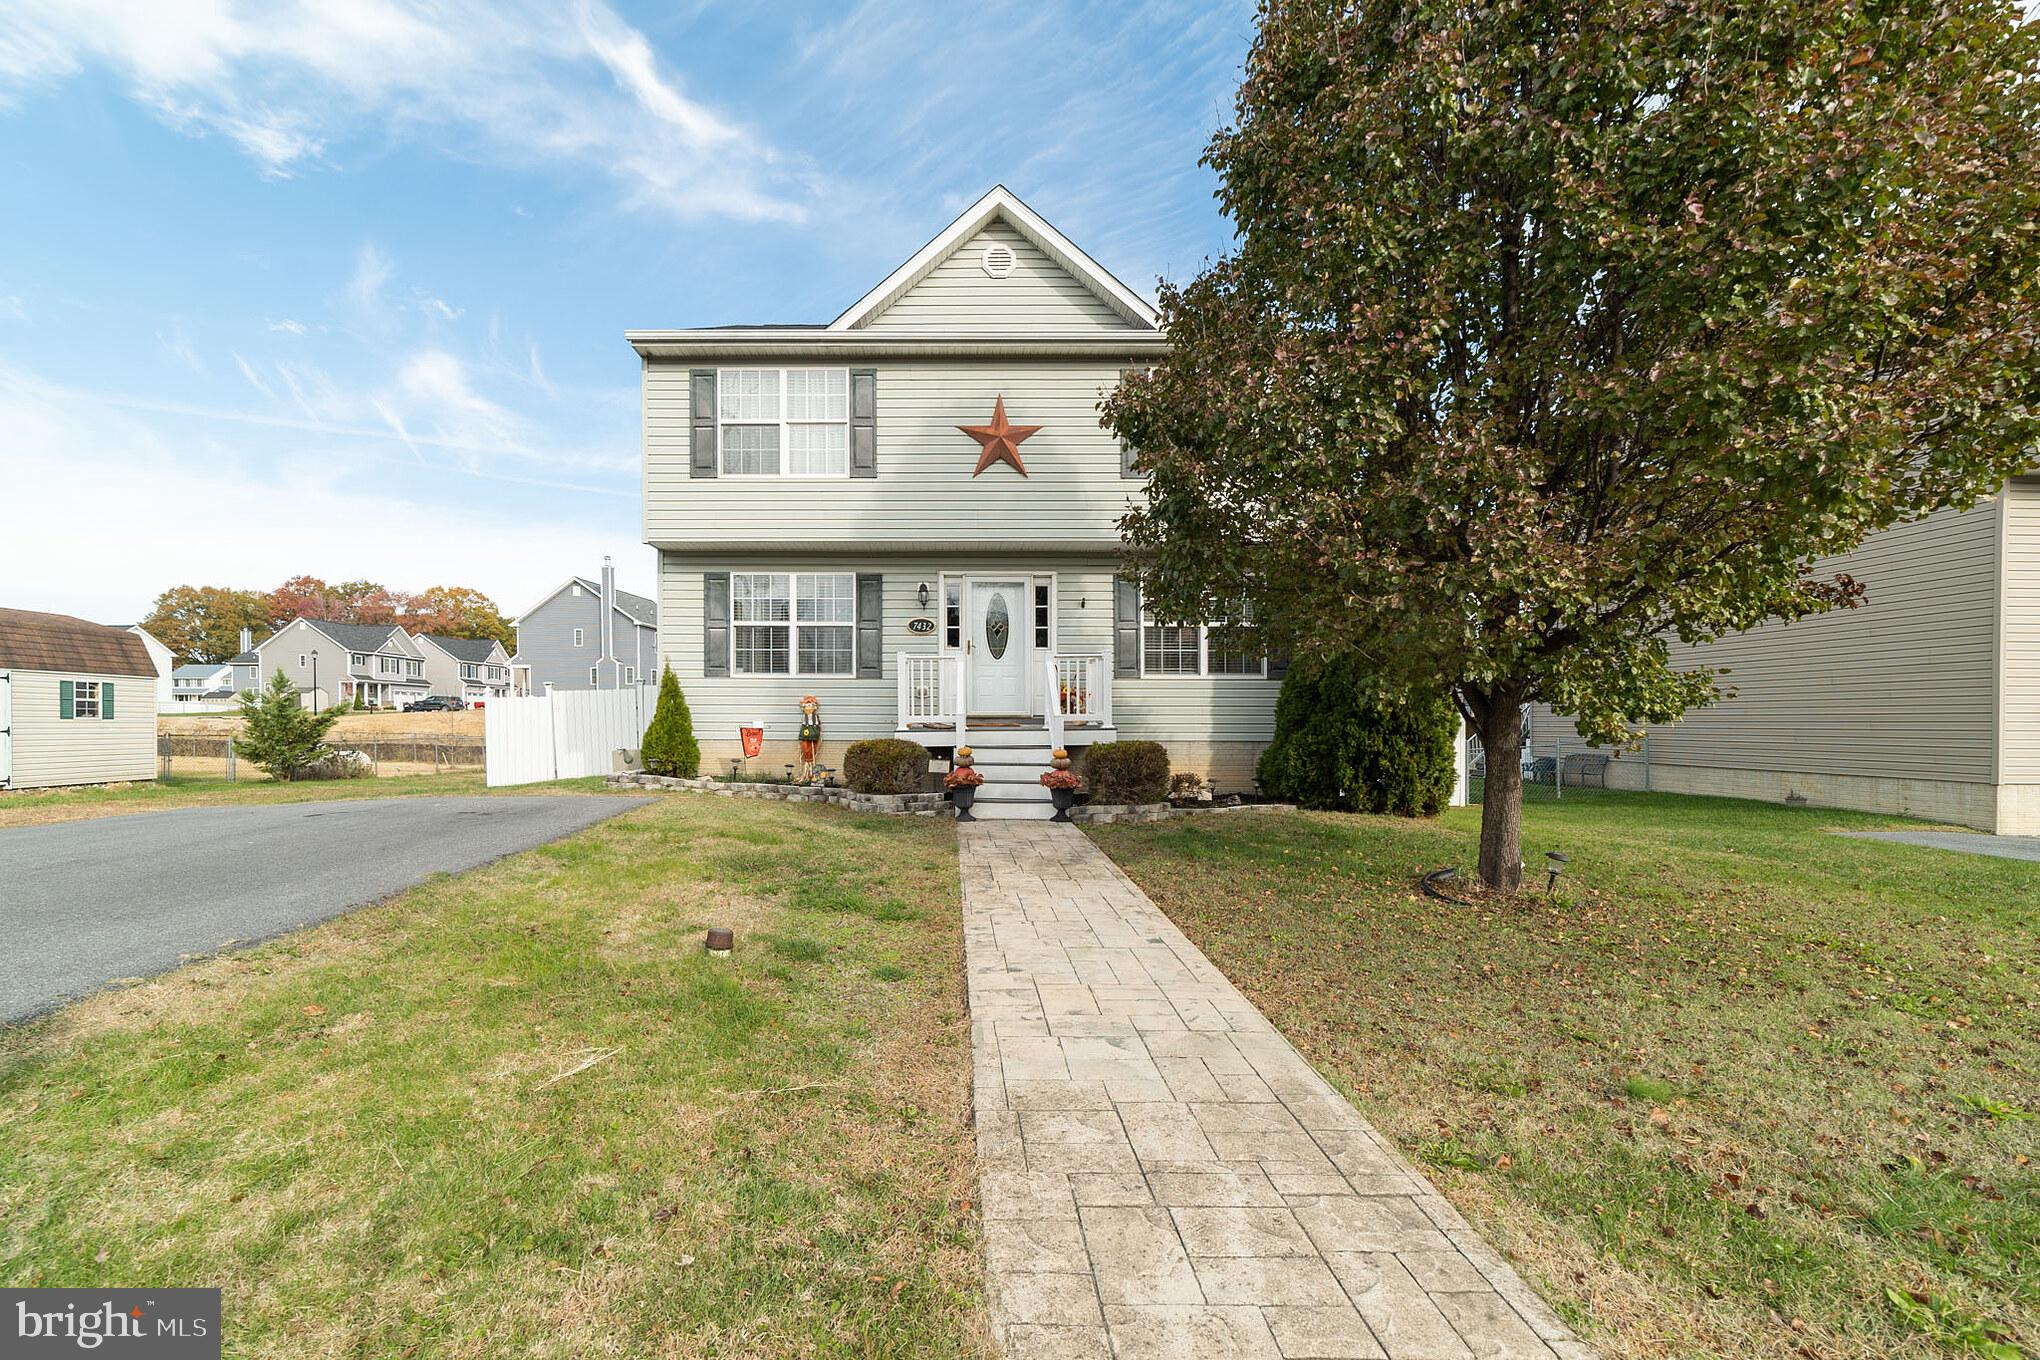 7432 BLEVINS AVENUE, SPARROWS POINT, MD 21219